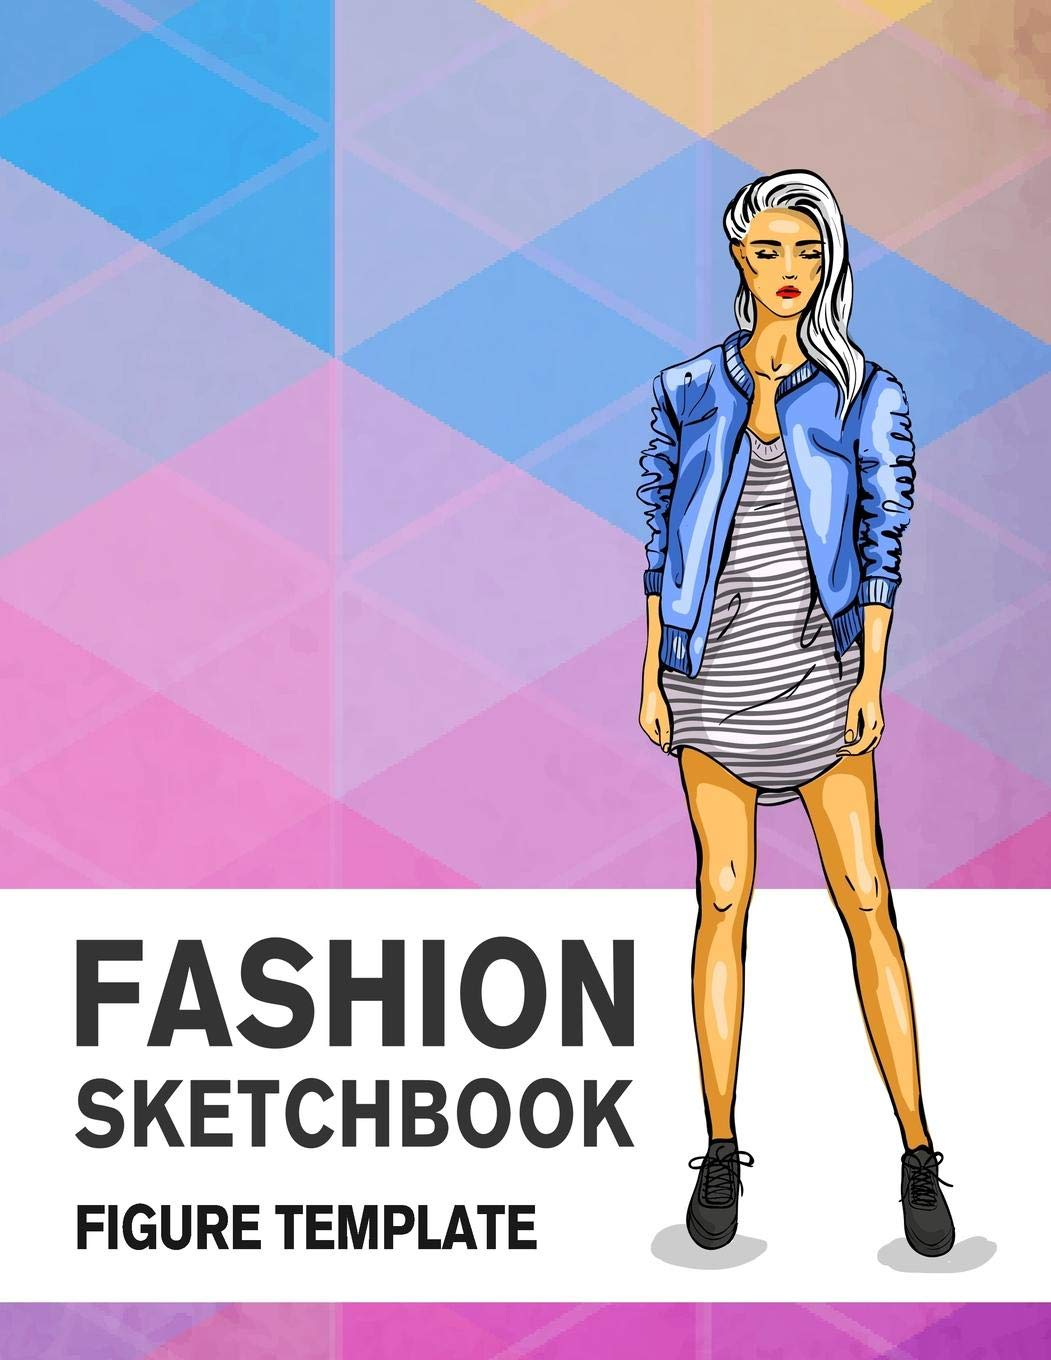 Fashion Sketchbook Figure Template 430 Large Female Figure Template For Easily Sketching Your Fashion Design Styles And Building Your Portfolio Derrick Lance 9781799013280 Amazon Com Books